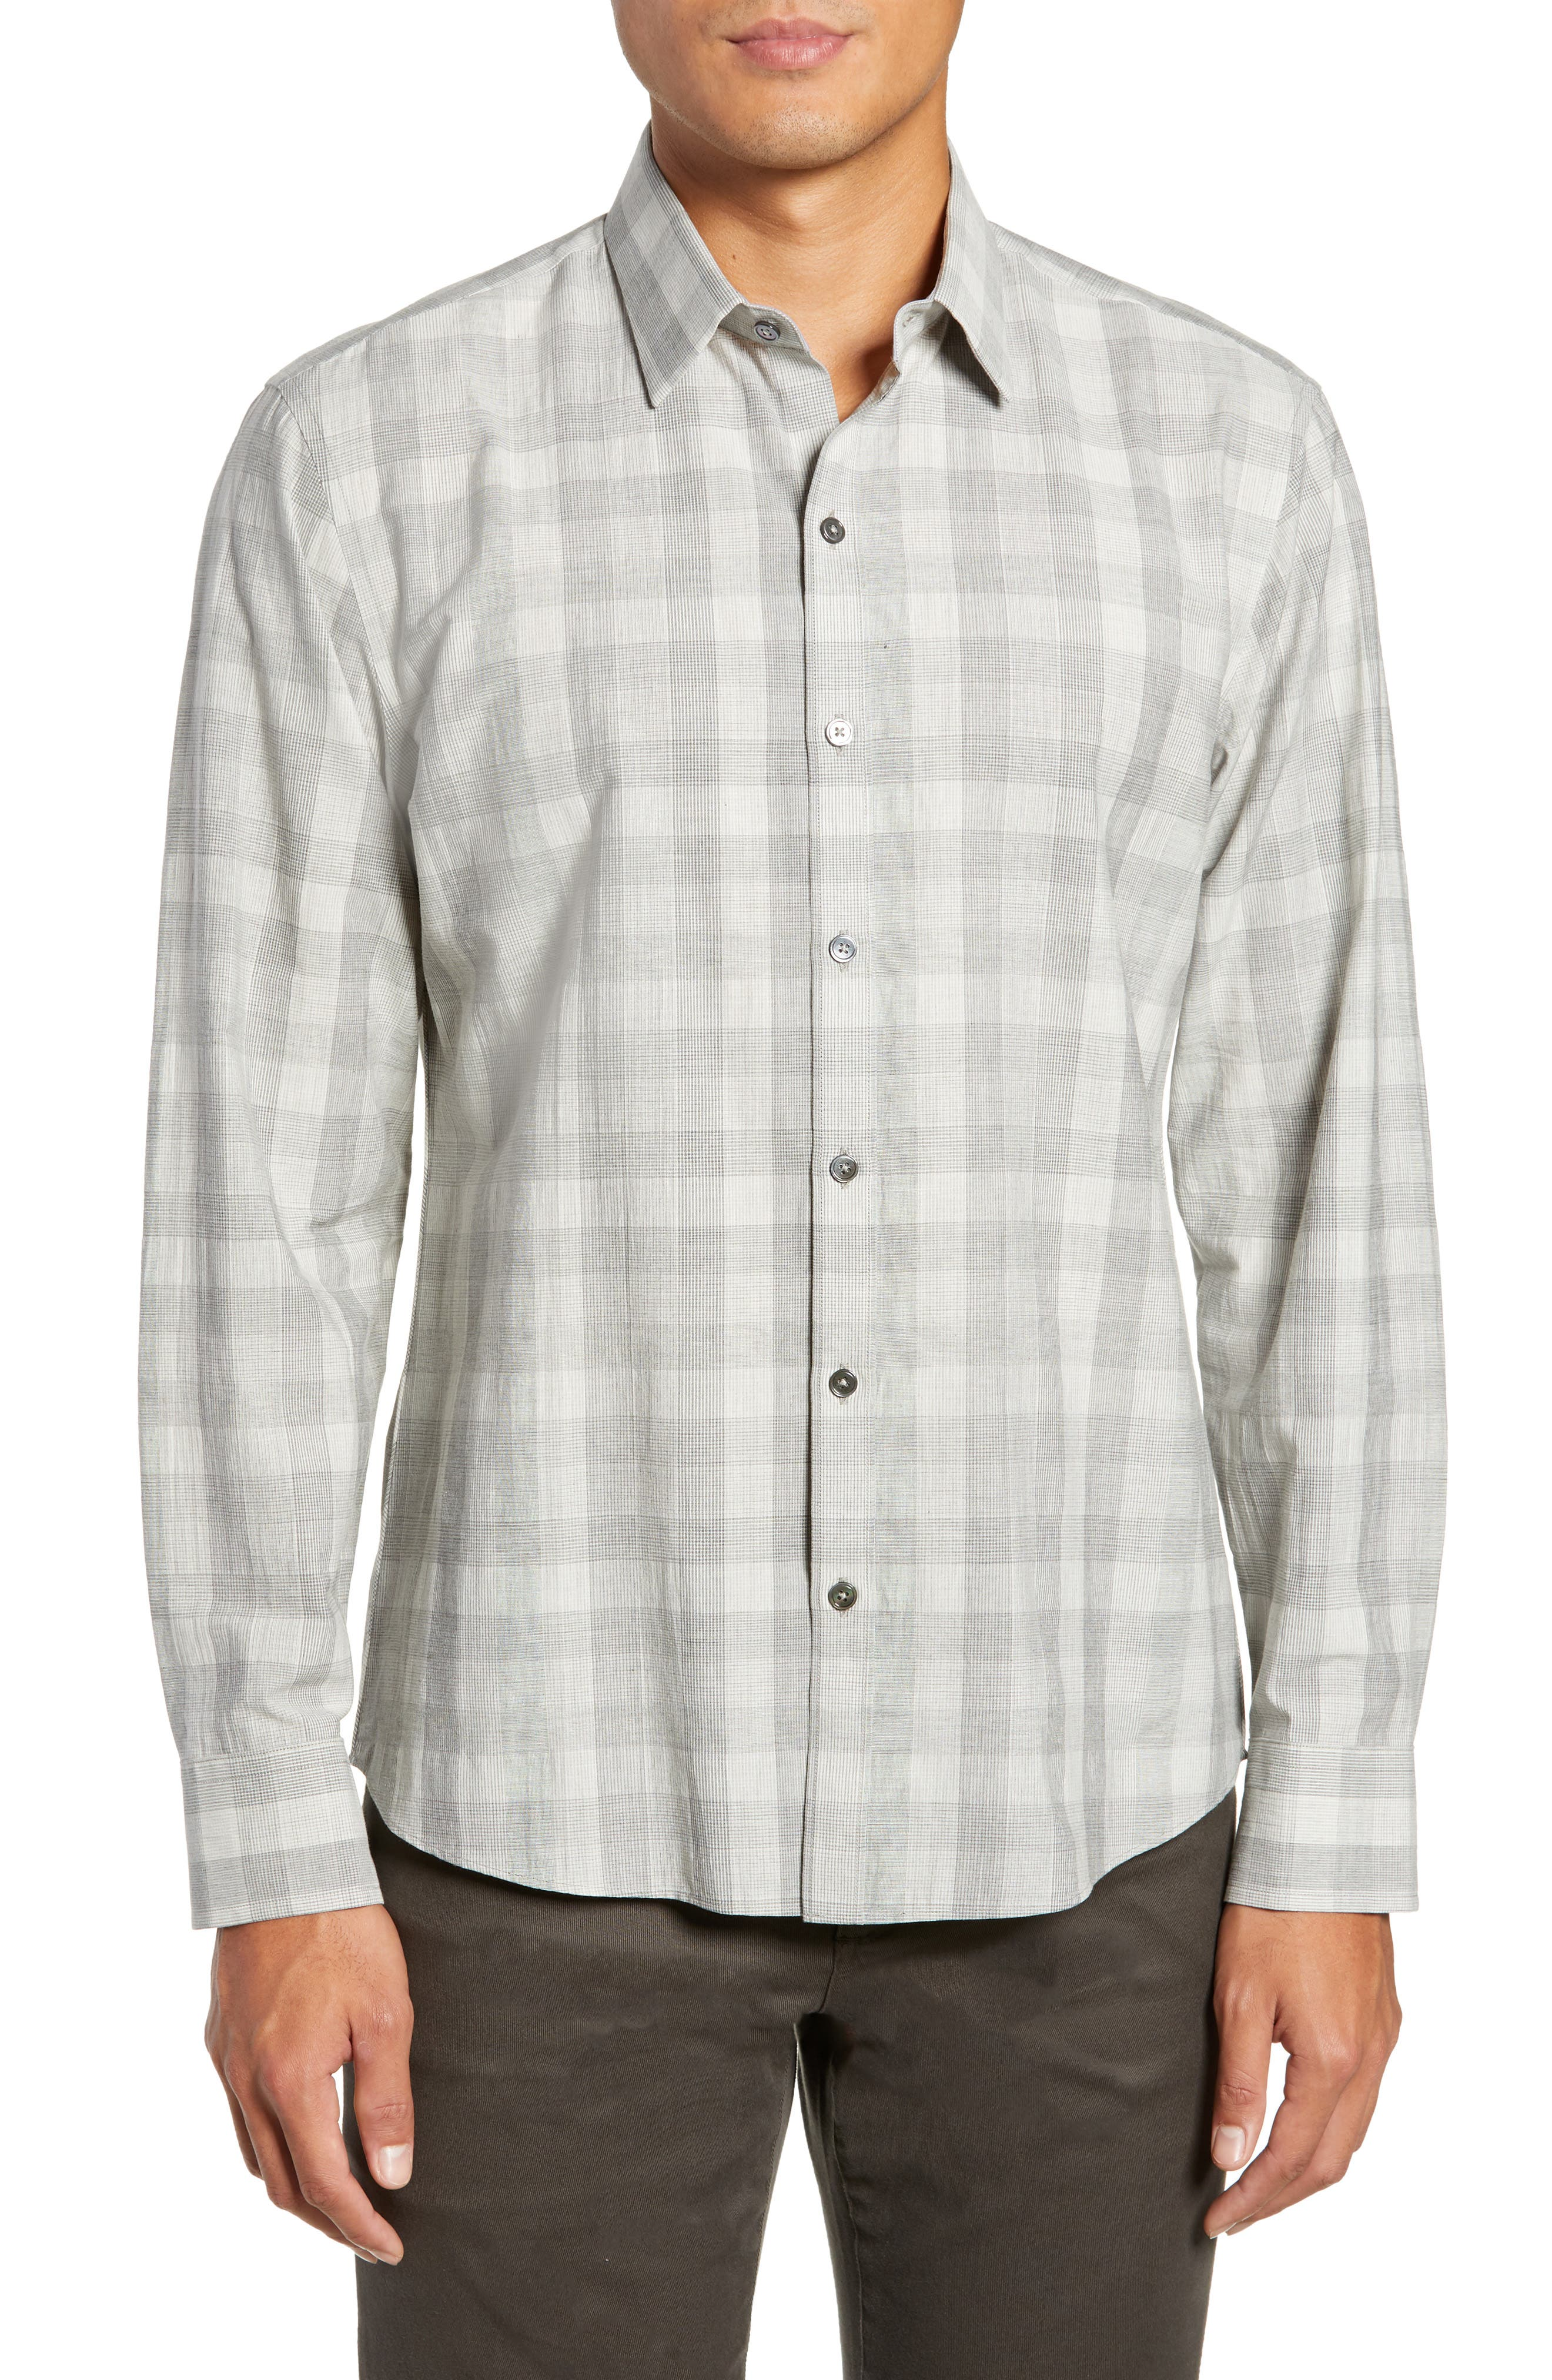 Minch Regular Fit Sport Shirt,                         Main,                         color, 050